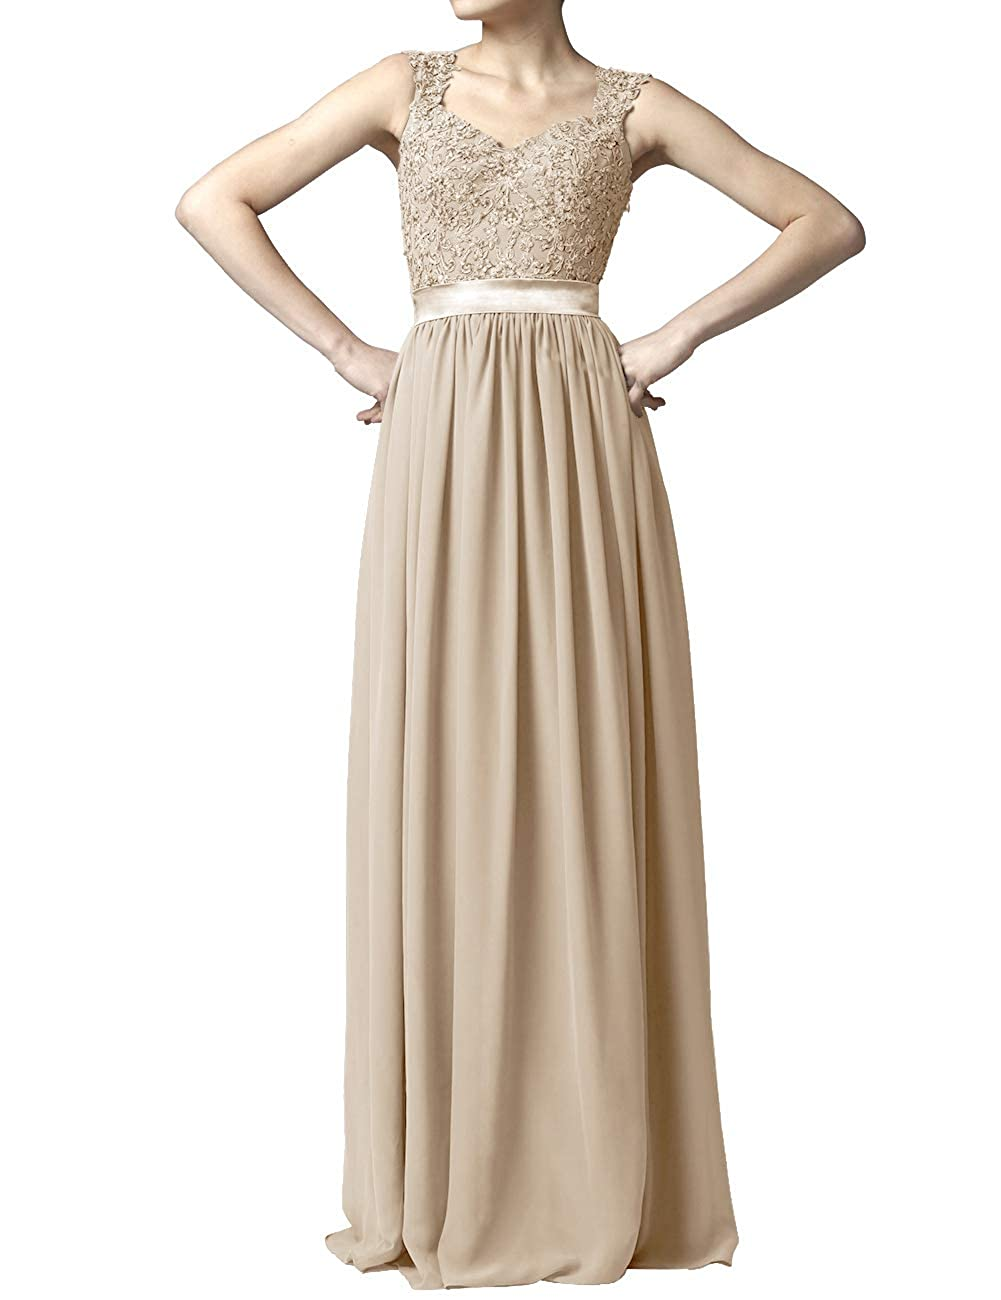 Champagne Women' Cap Sleeve Lace Bridesmaid Dresses Long Wedding Party Gowns